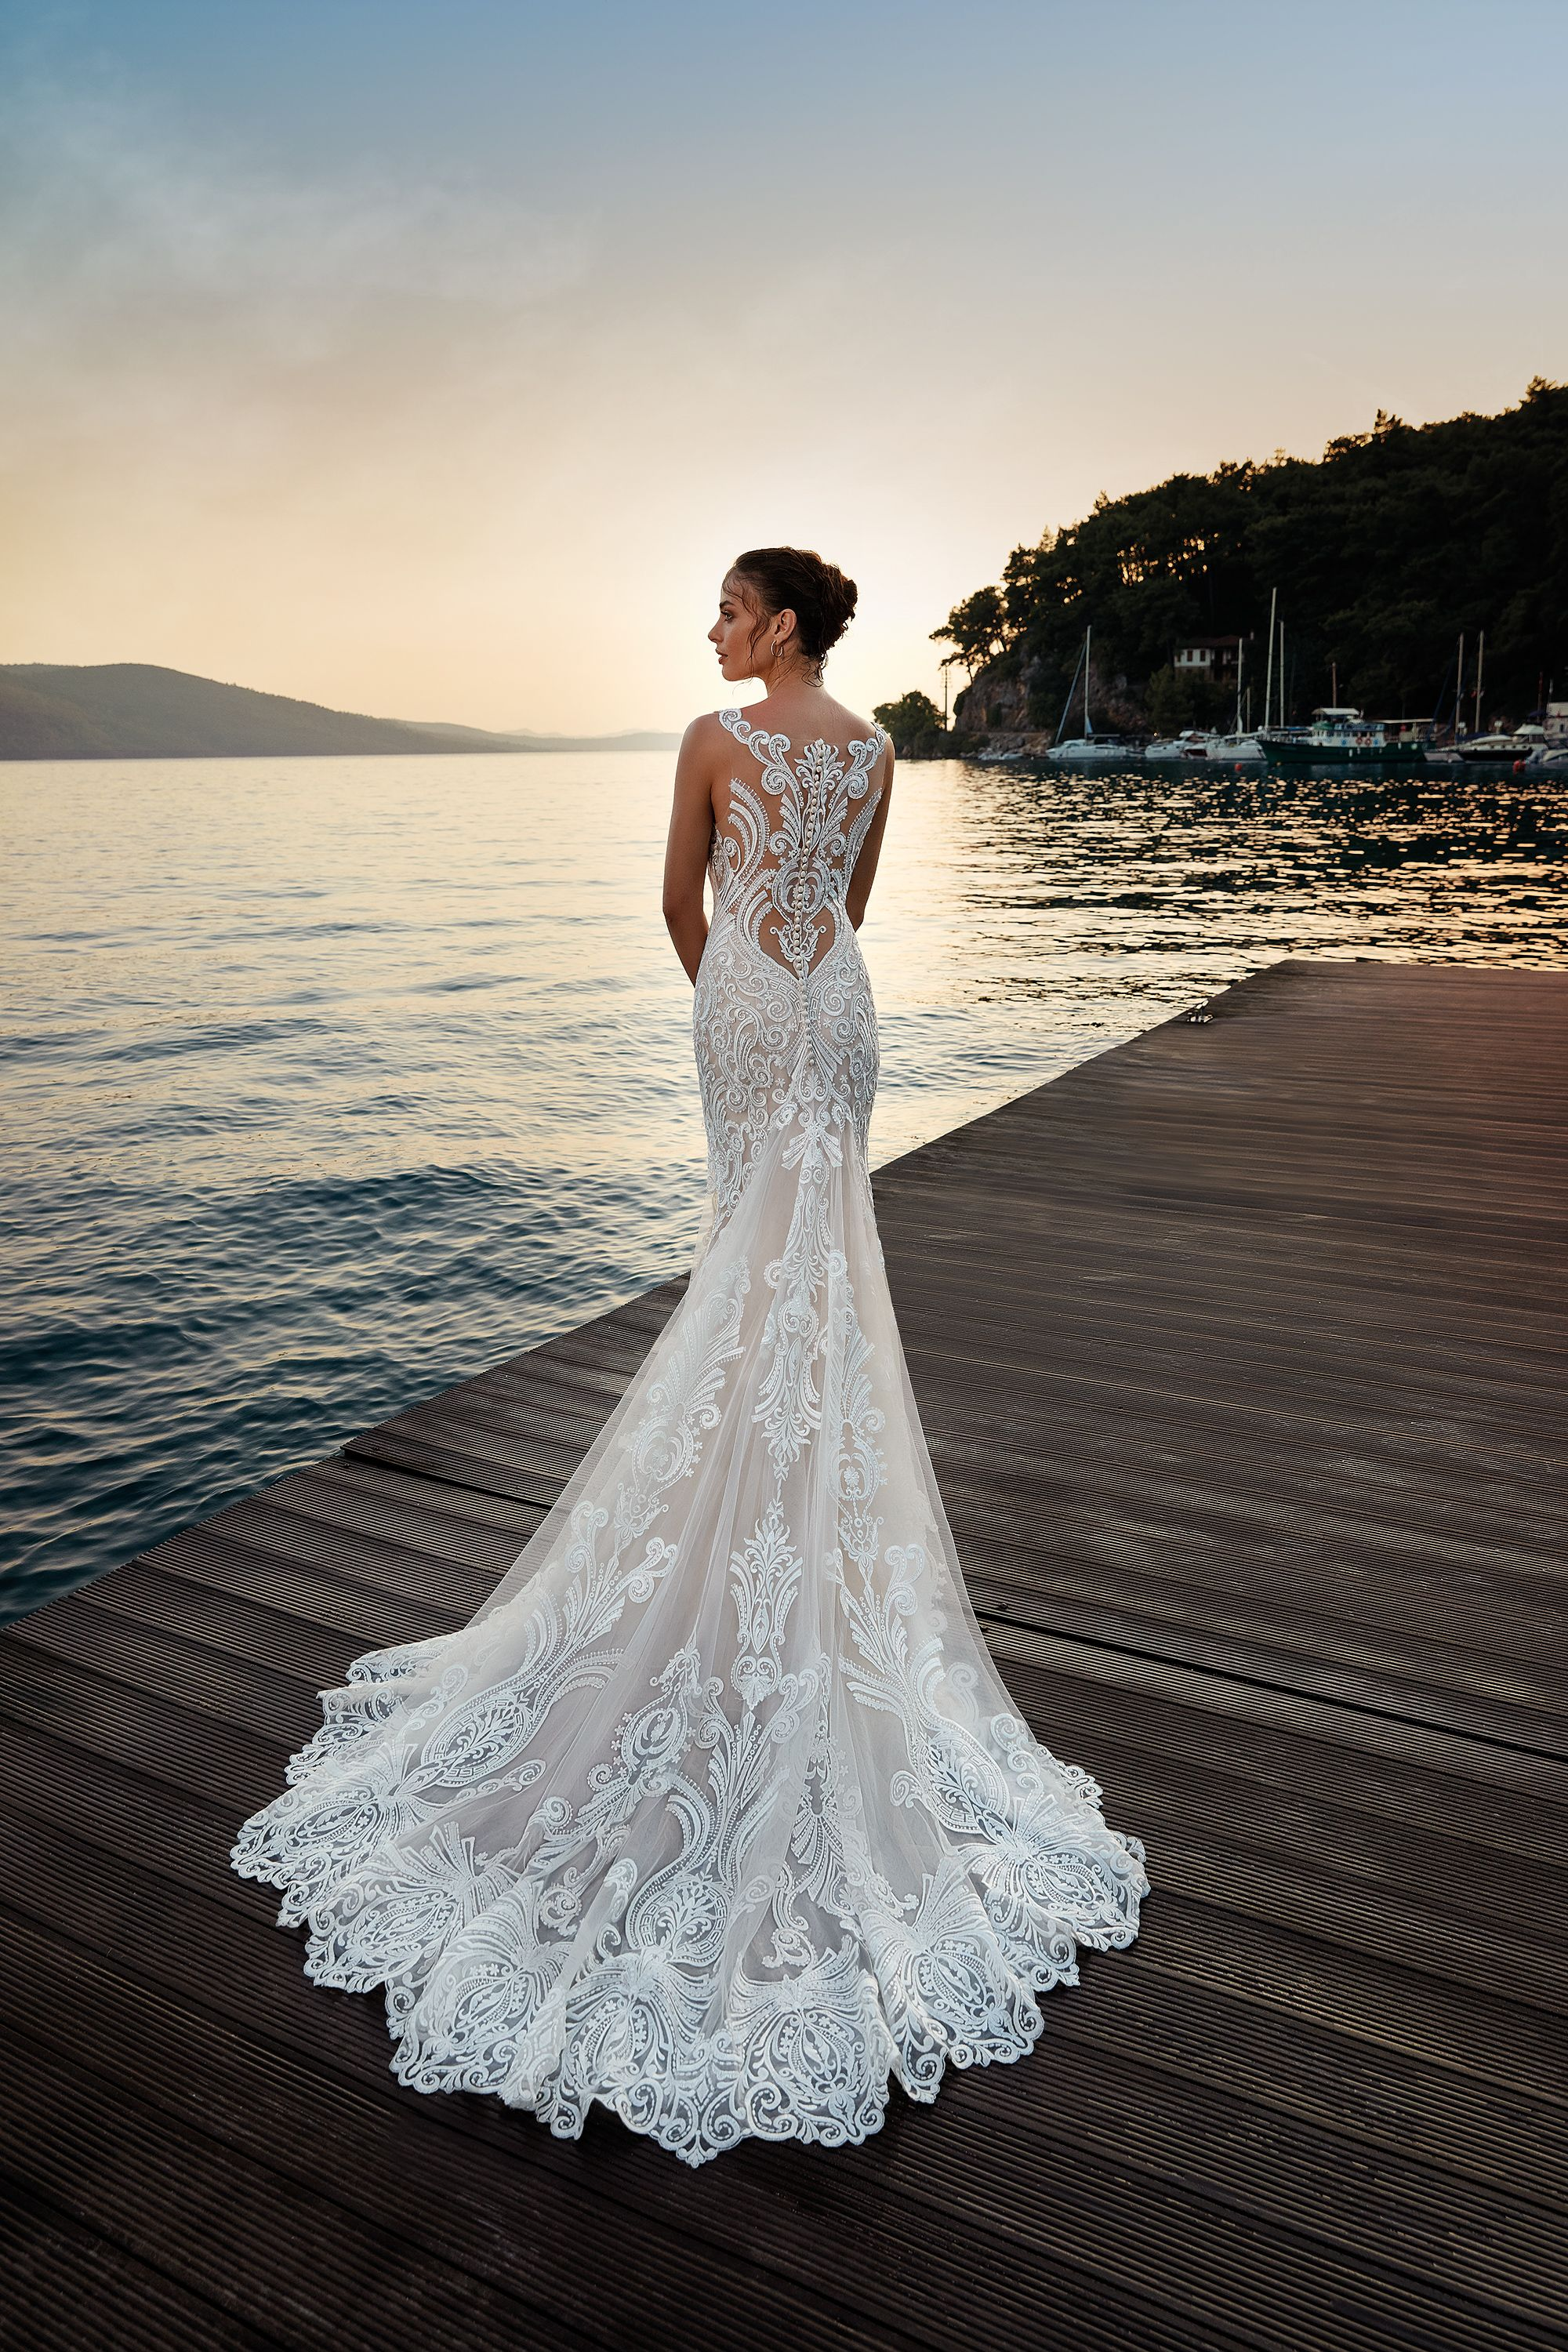 Introducing The New Eddy K Dreams 2019 Collection Fit N Flare Wedding Dress Wedding Dresses Wedding Dresses Sydney